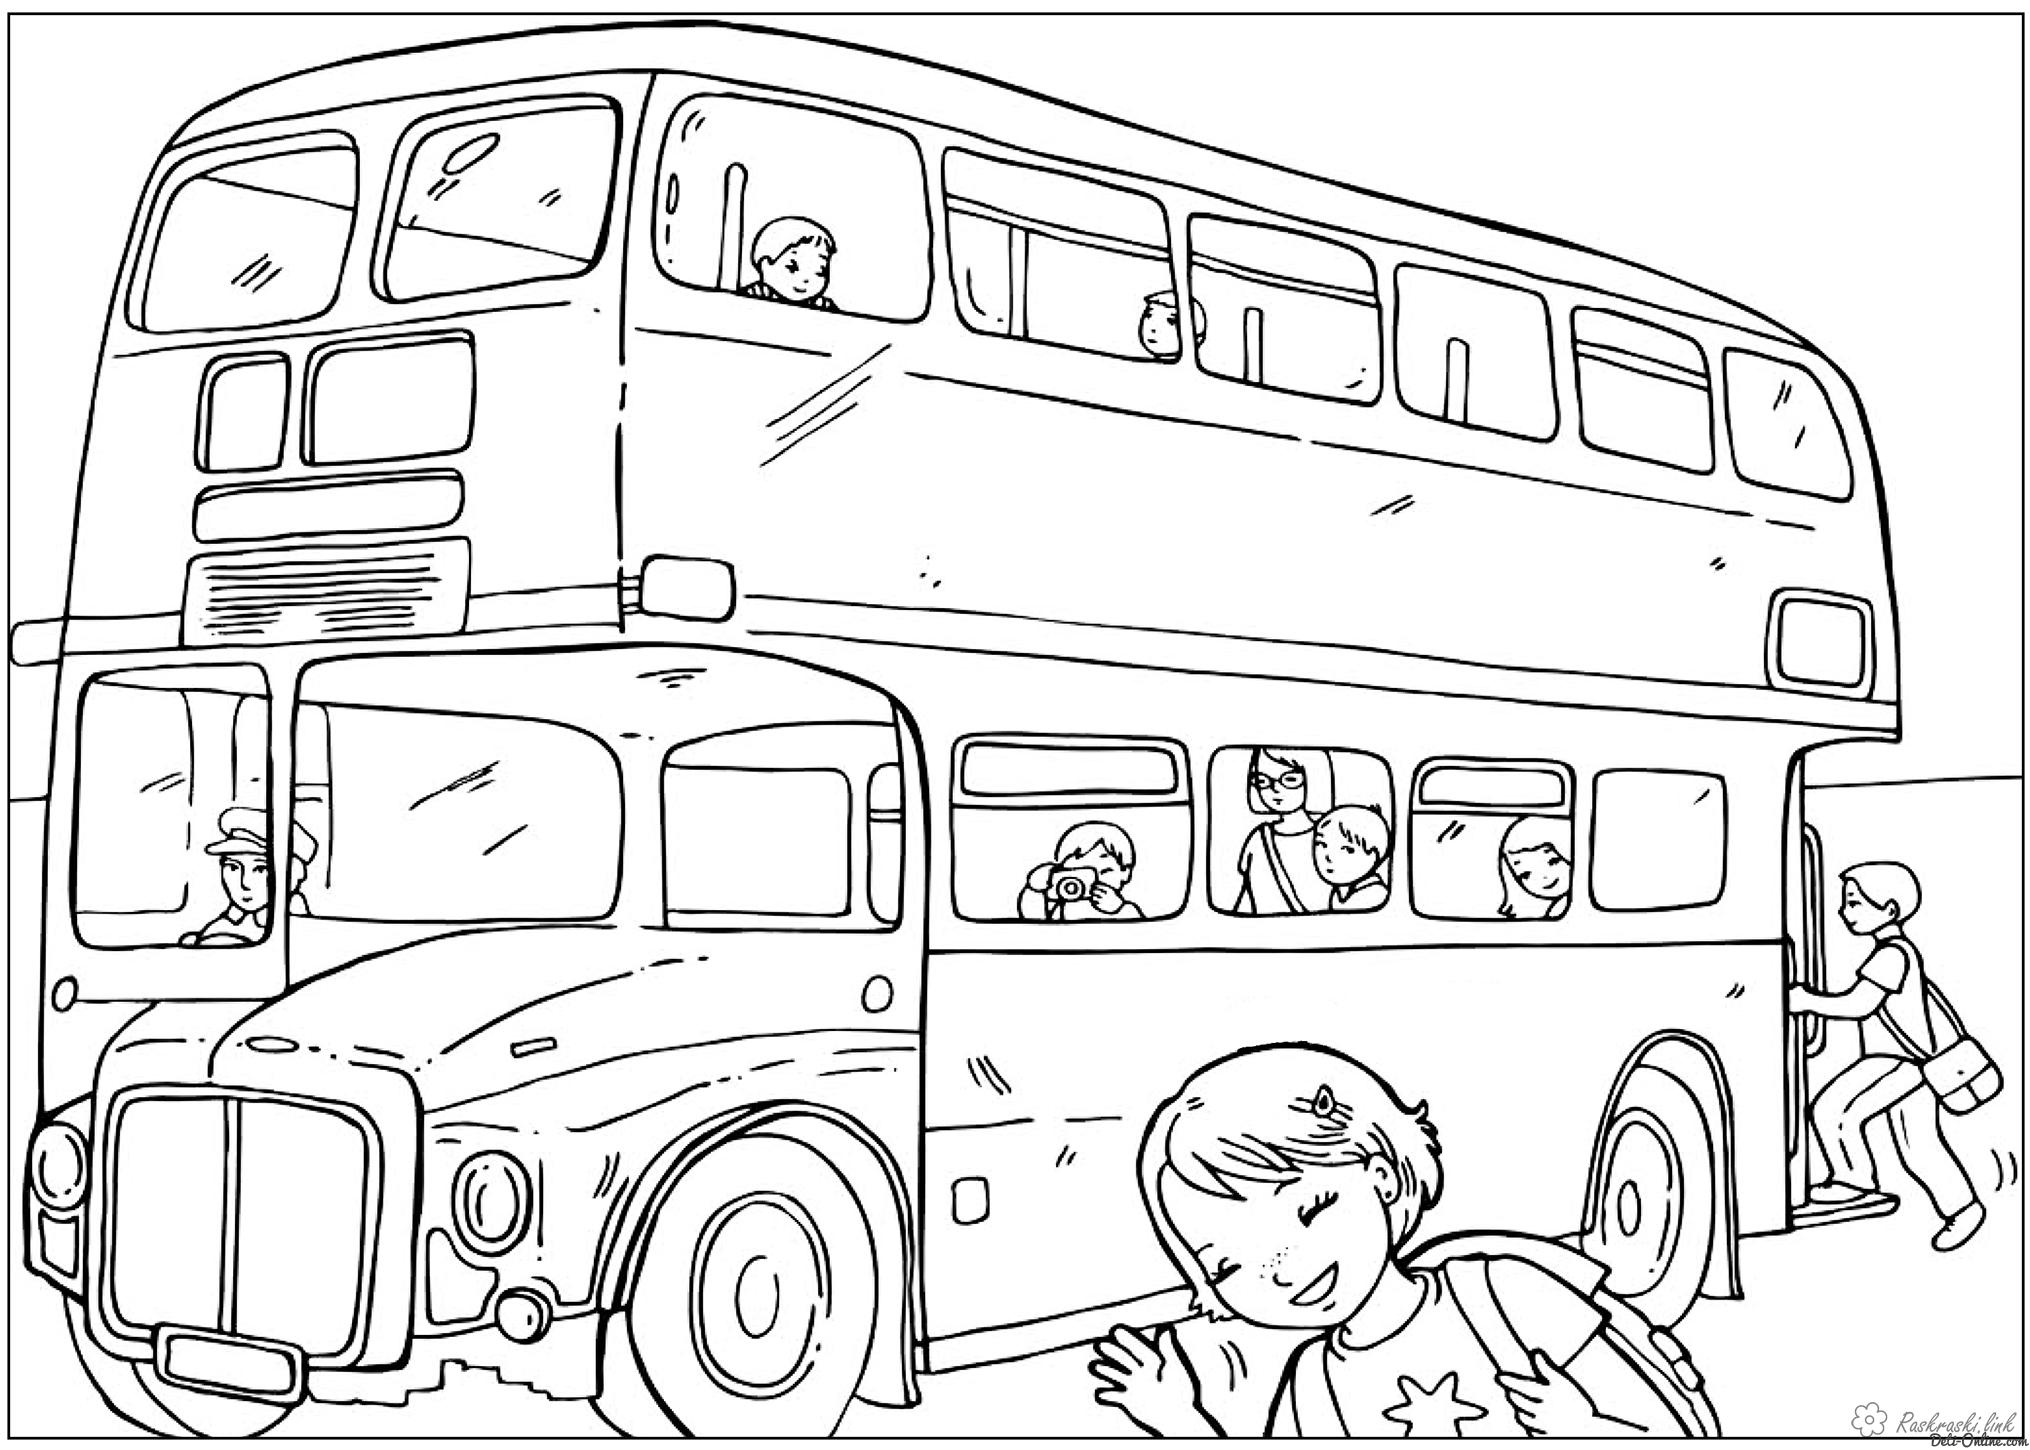 Coloring London coloring pages London Bus UK